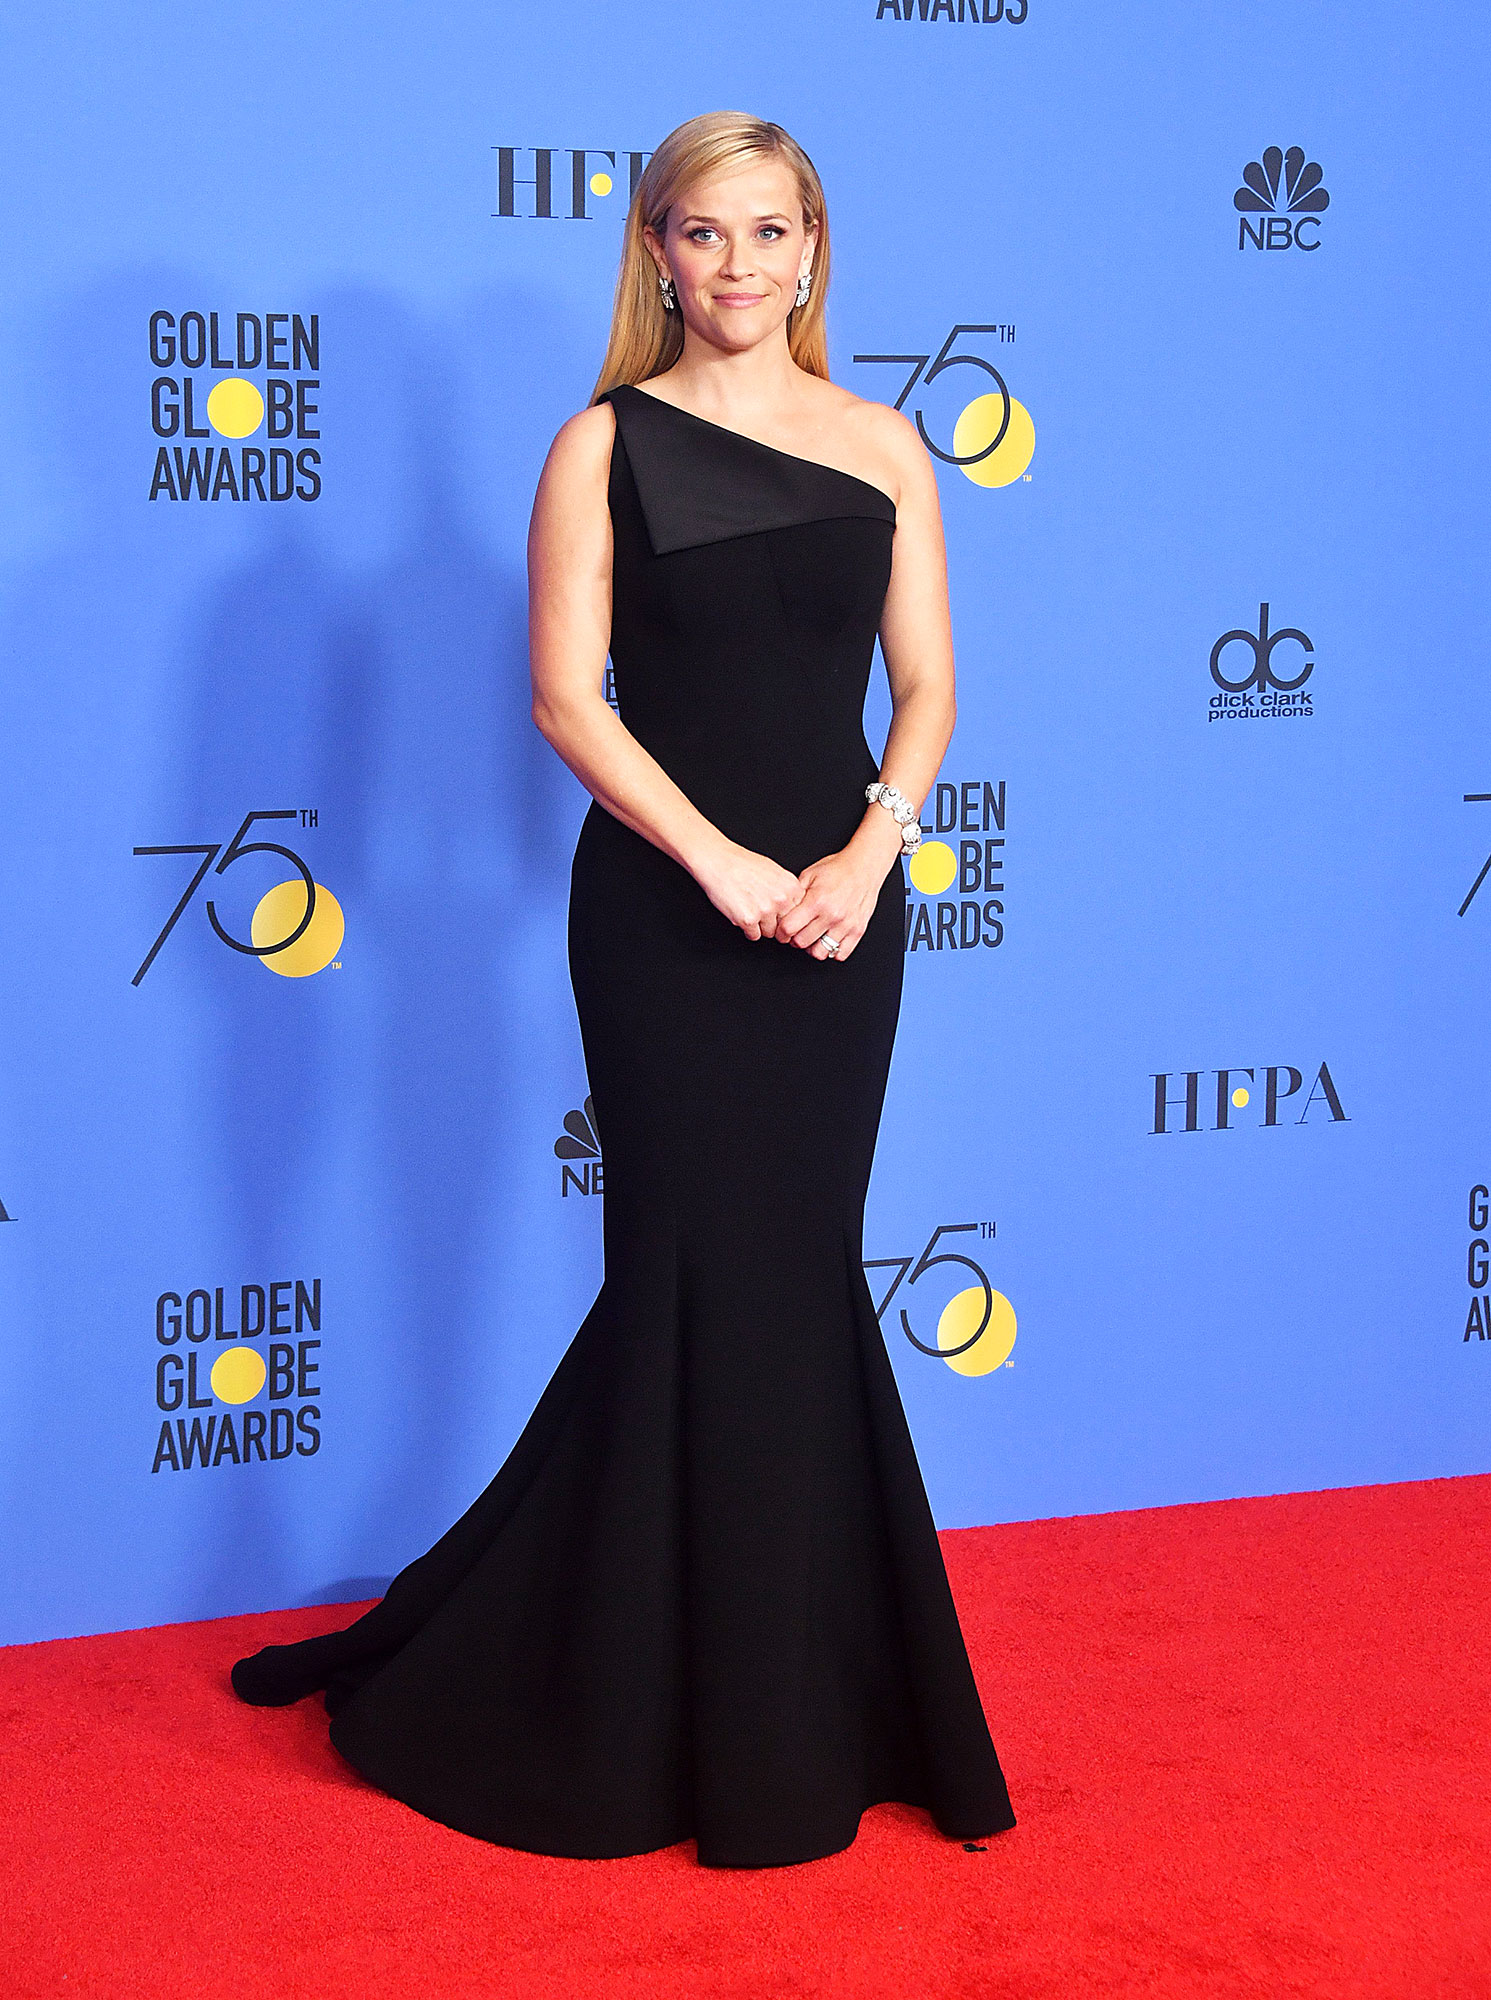 Birthday Girl Reese Witherspoon's Best Red Carpet Looks - Actress Reese Witherspoon poses during the 75th Golden Globe Awards on January 7, 2018, in Beverly Hills, California.